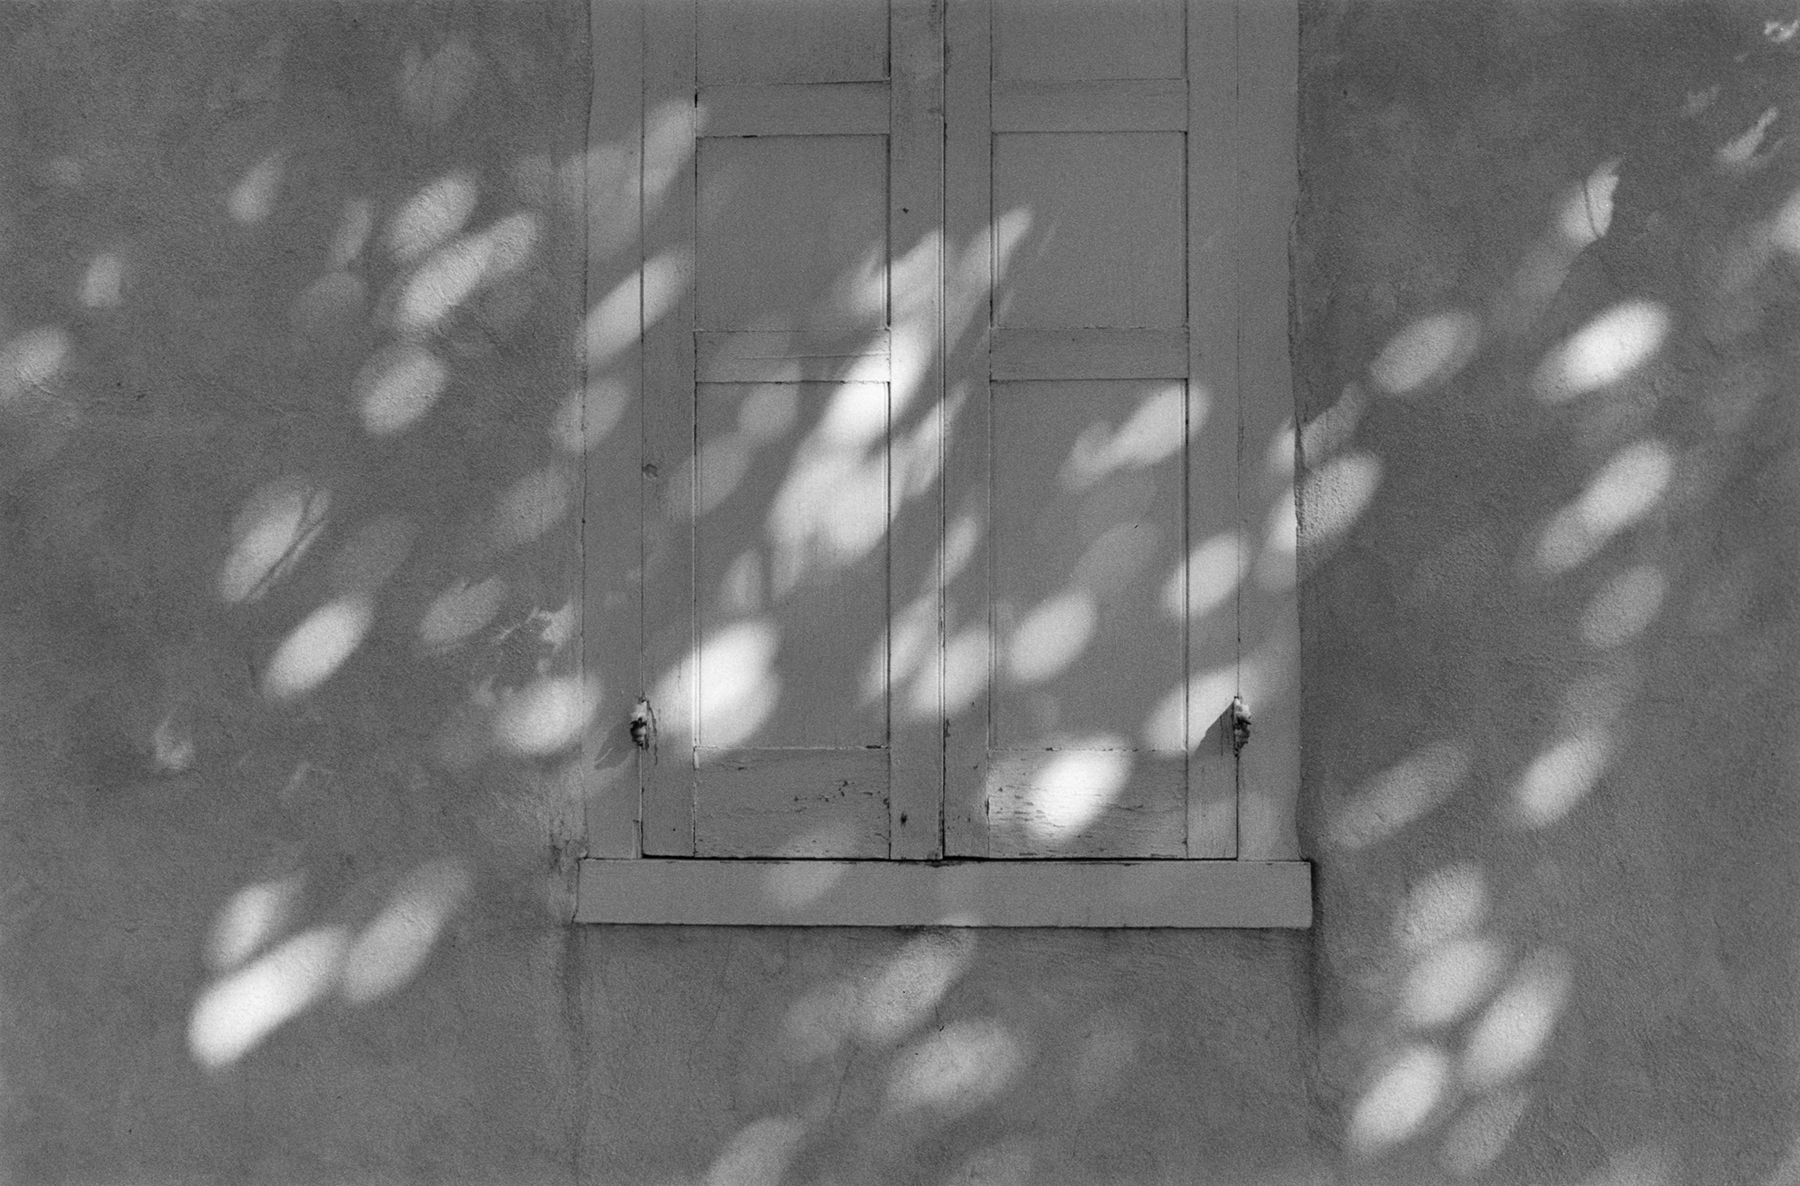 George Tice. Mennonite Meeting House, Lancaster, Pennsylvania, 1990. Palladiumprint. 5 x 7 1⁄4 in. (12.7 x 18.4 cm)